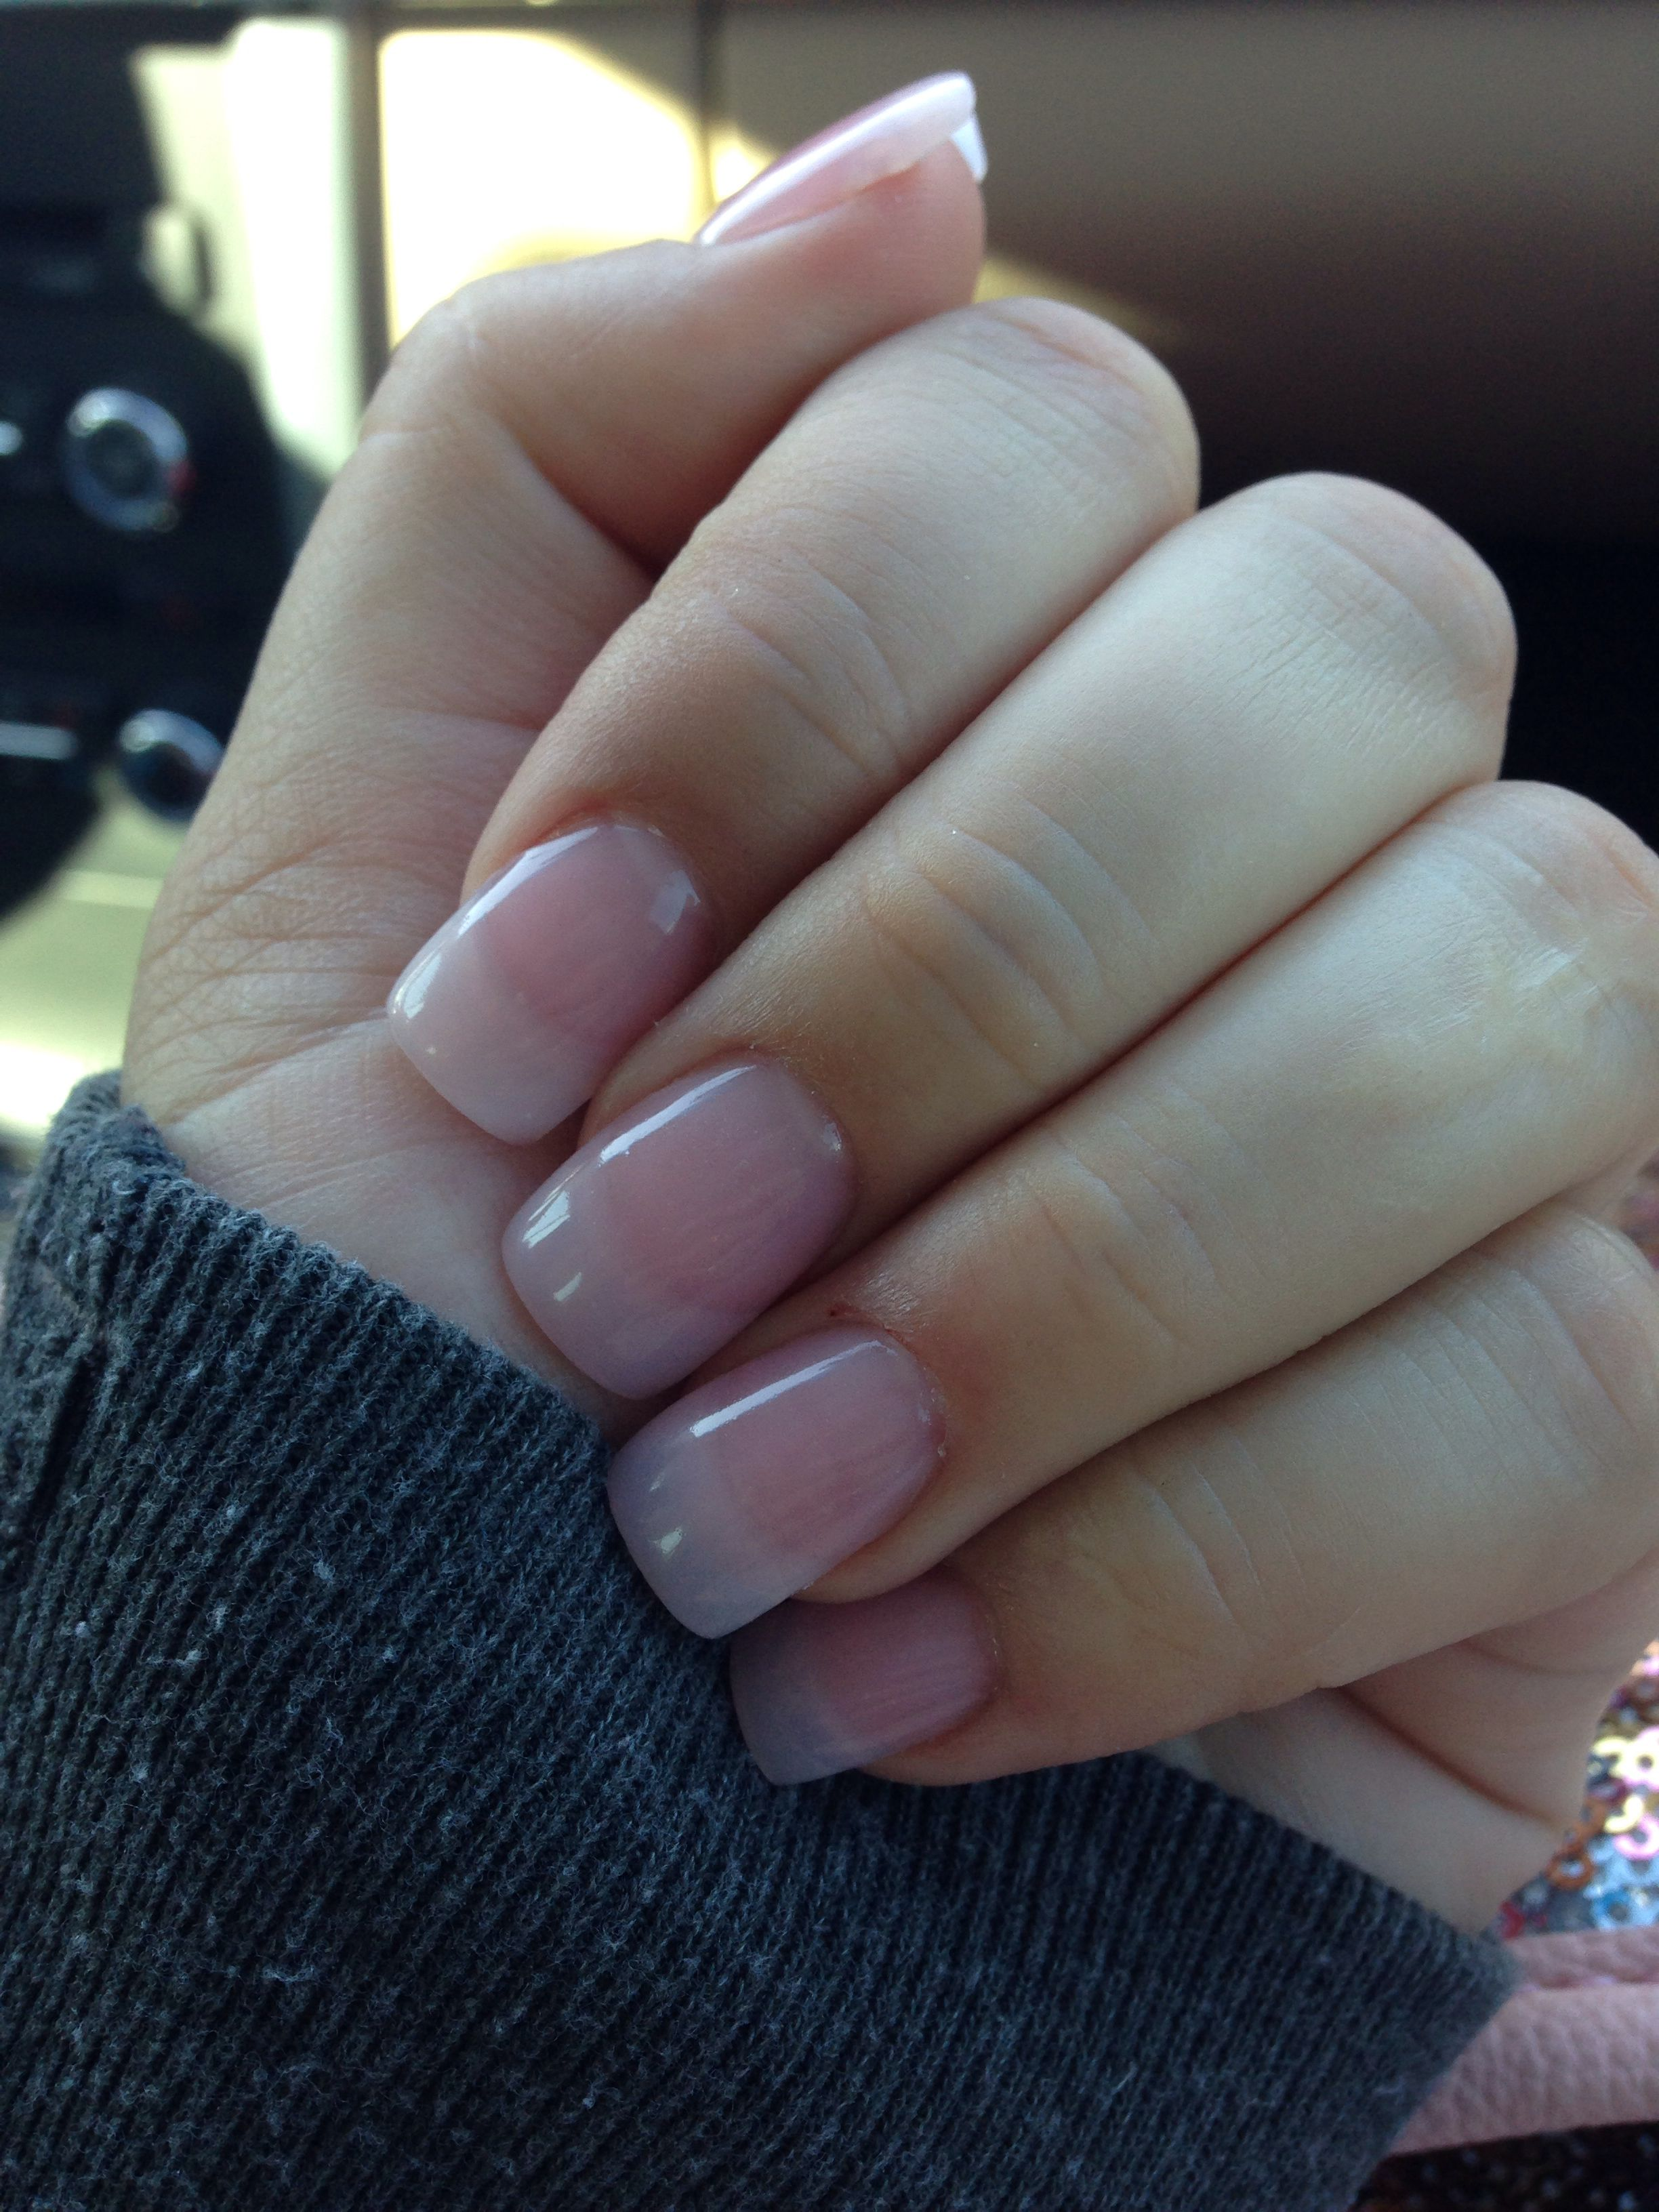 Natural acrylic nails | |NAILS| | Pinterest | Natural acrylic nails ...